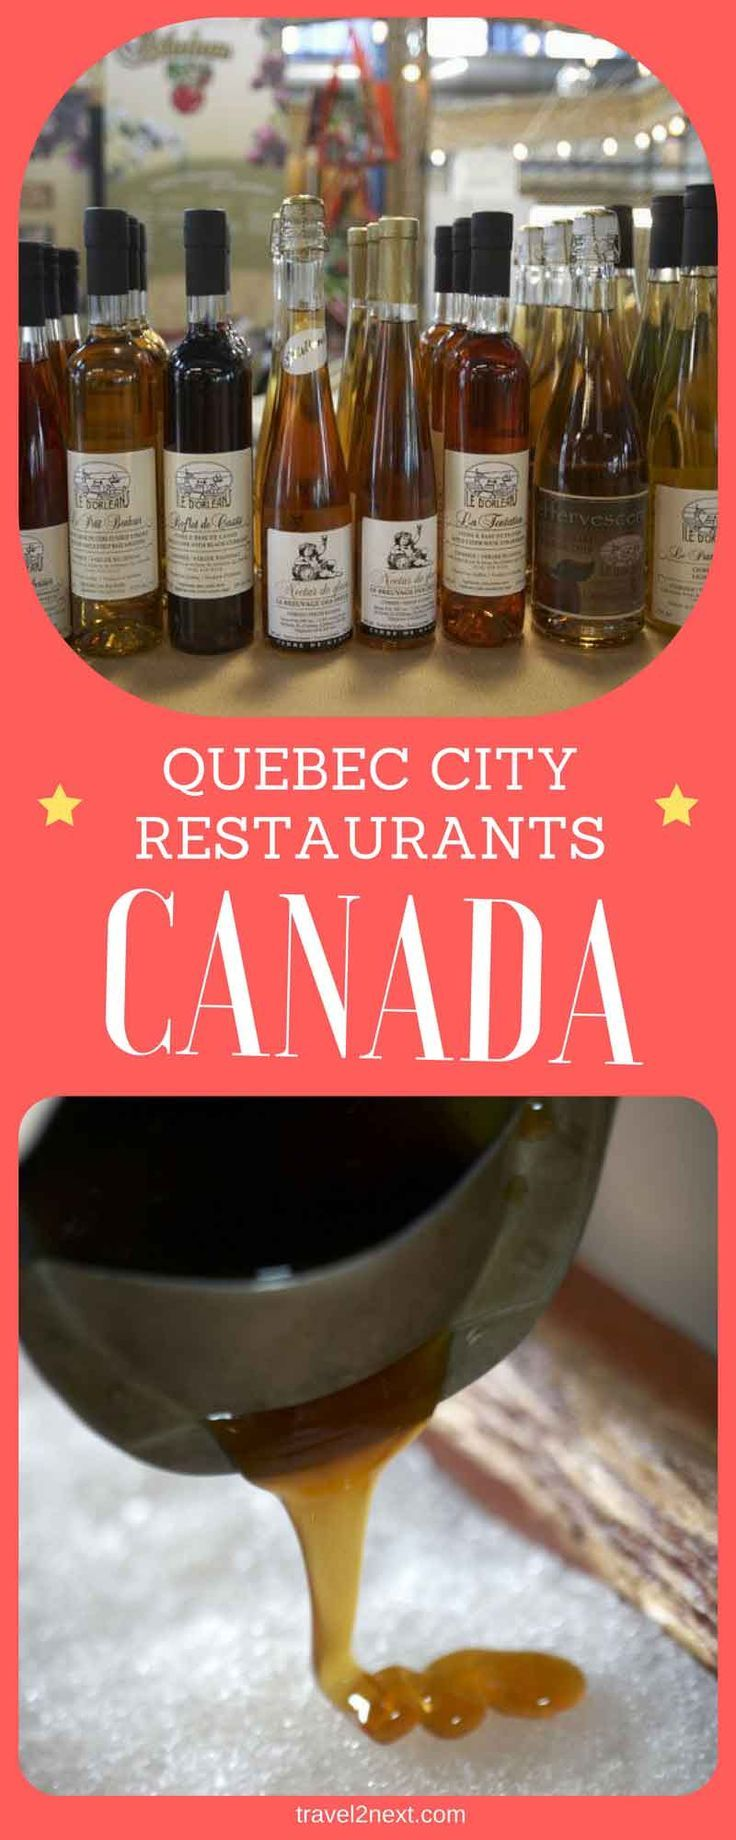 Quebec City Restaurants City Restaurants Quebec City Canadian Food